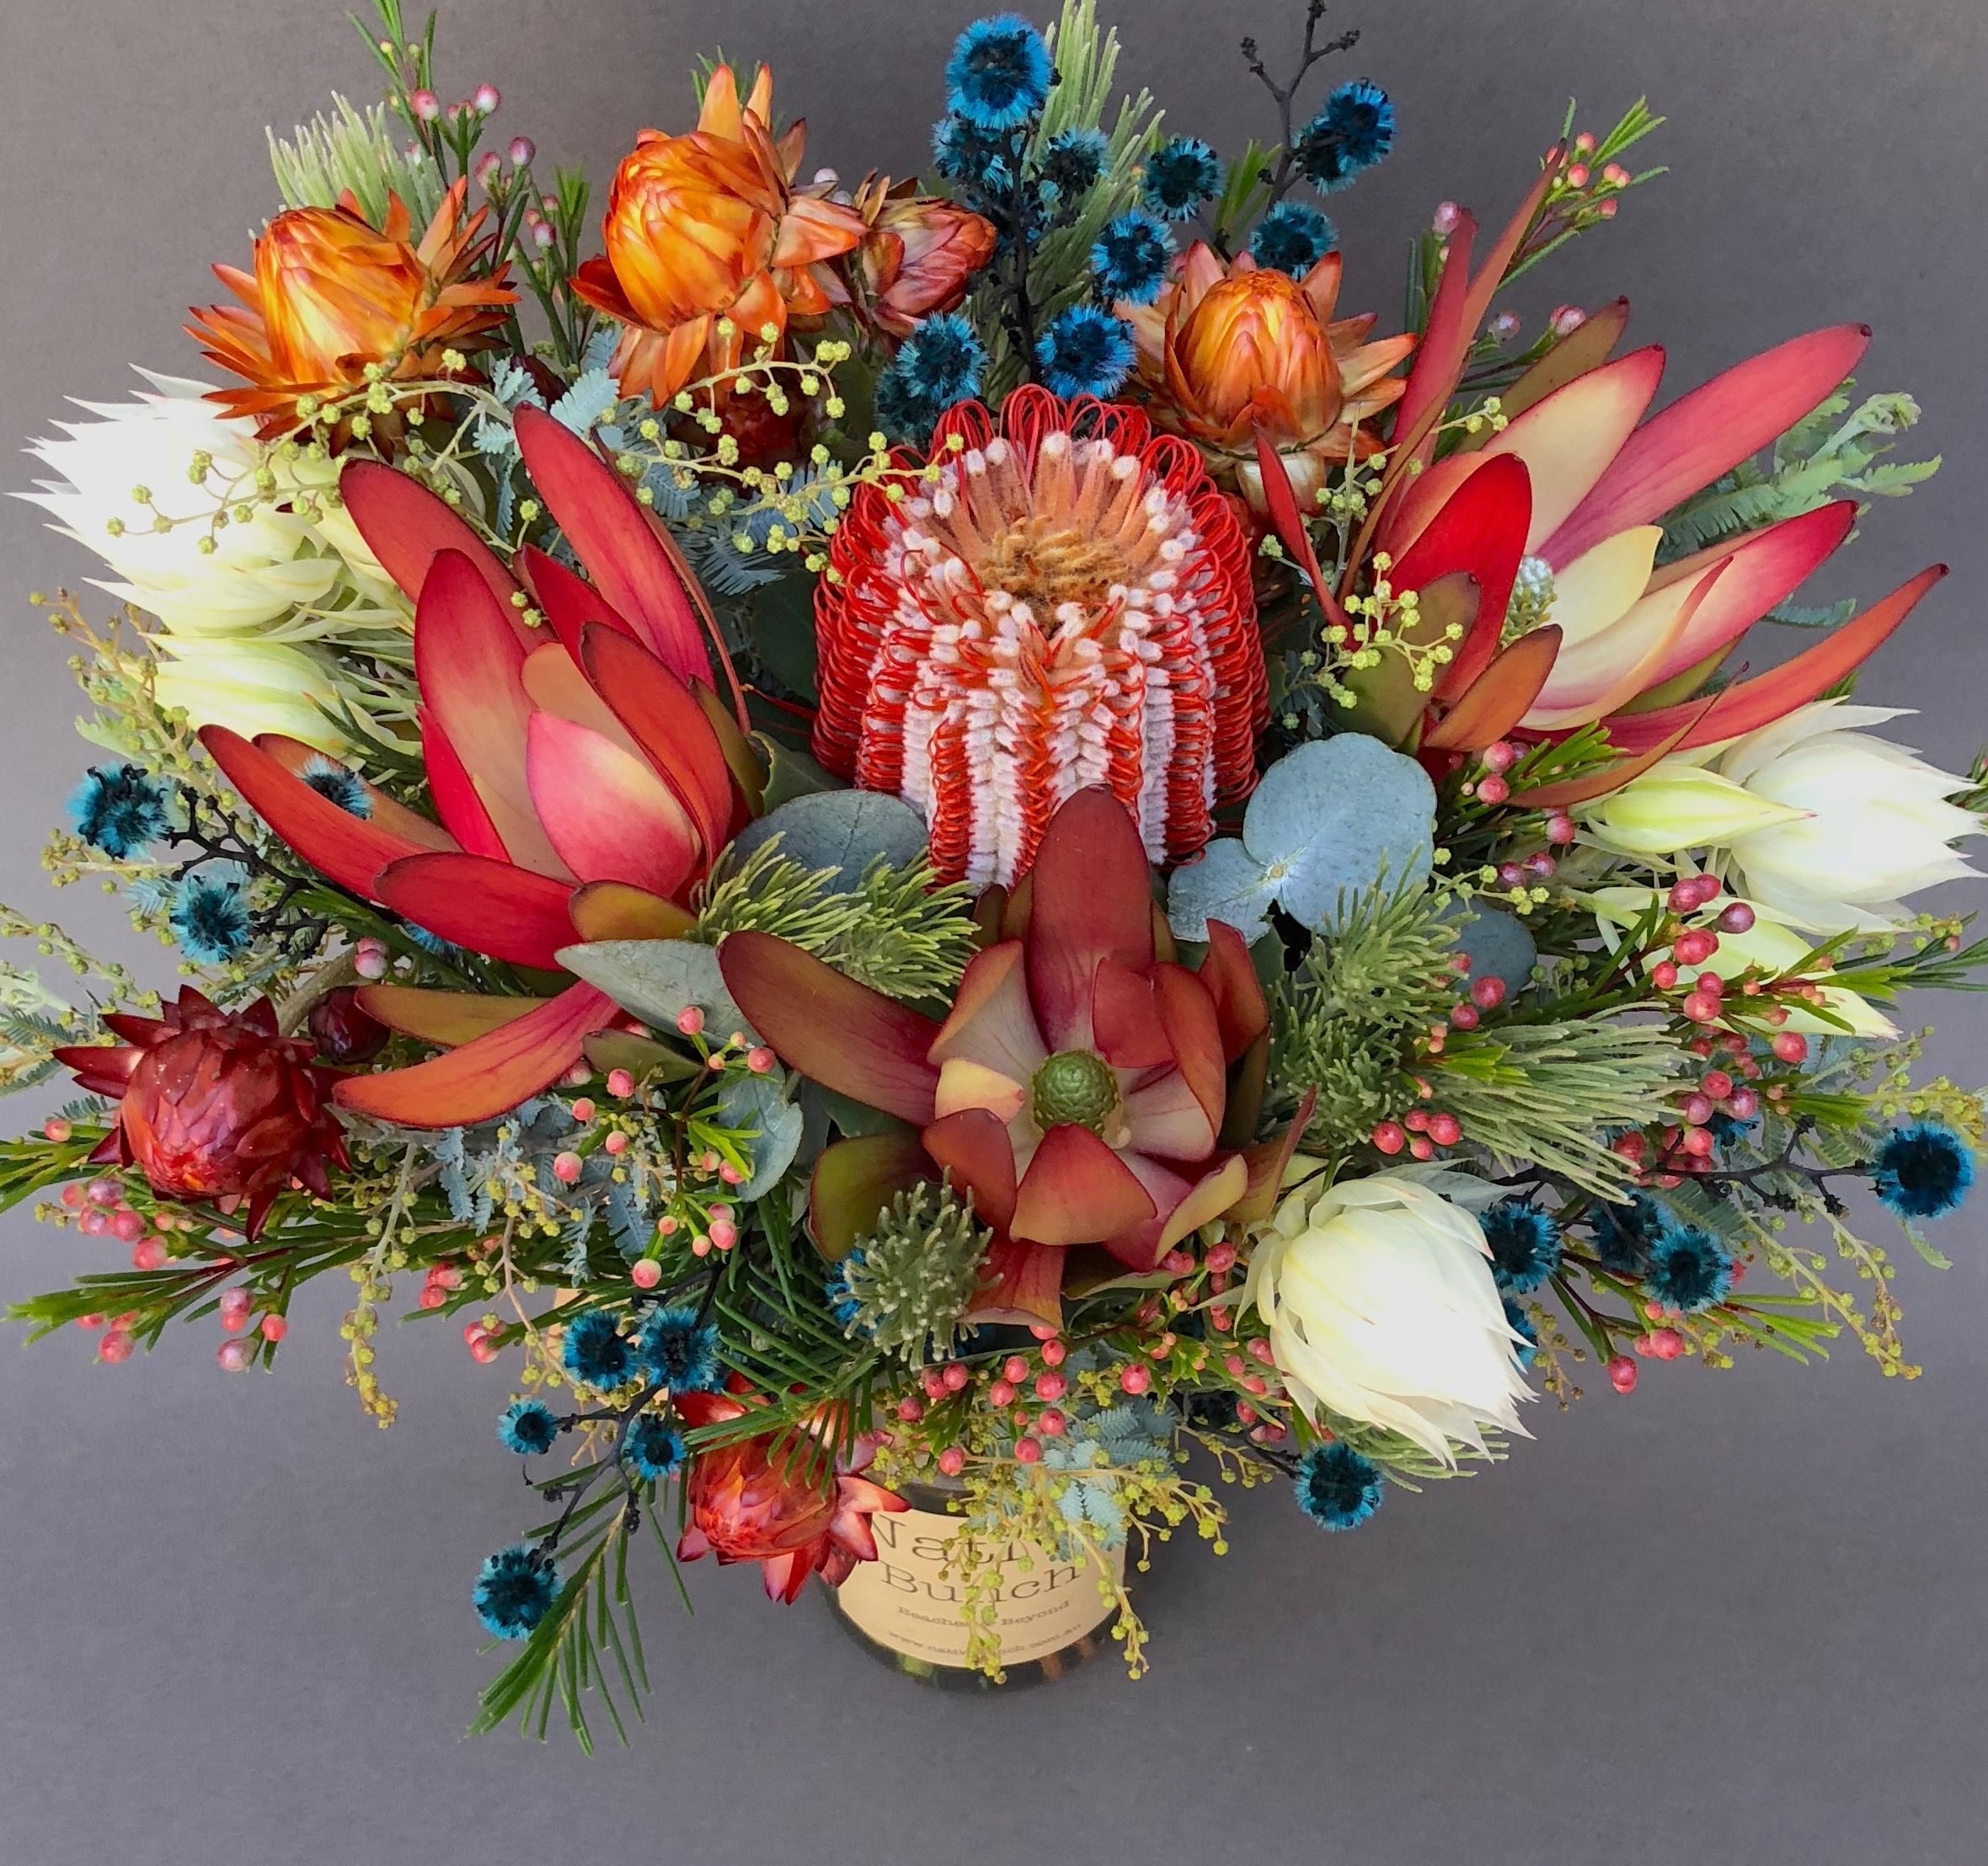 Native flower jar of Banksia coccinea, Protea blushing